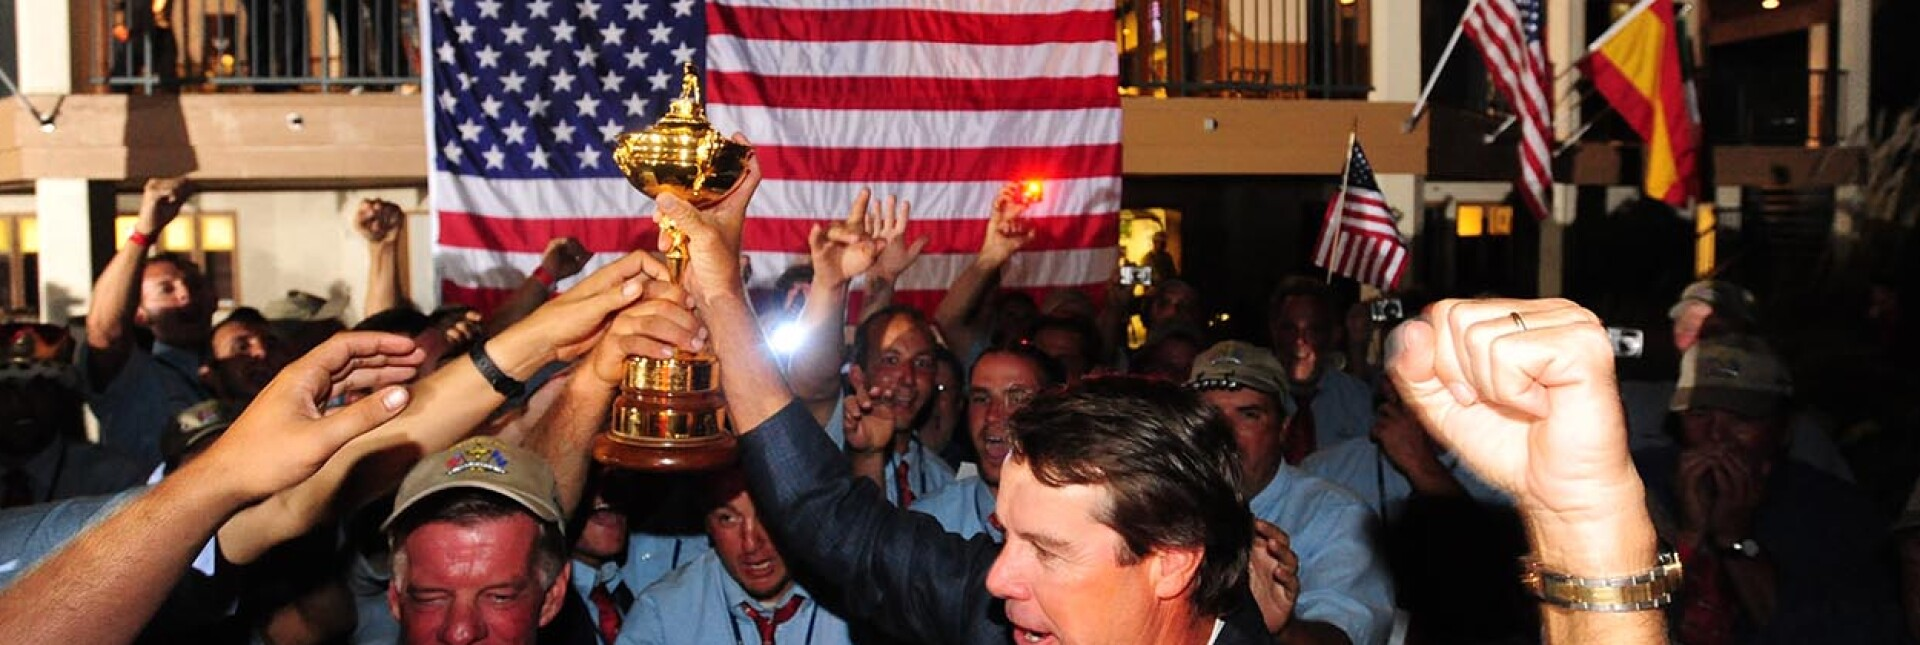 2008-ryder-cup-usa-results.jpg